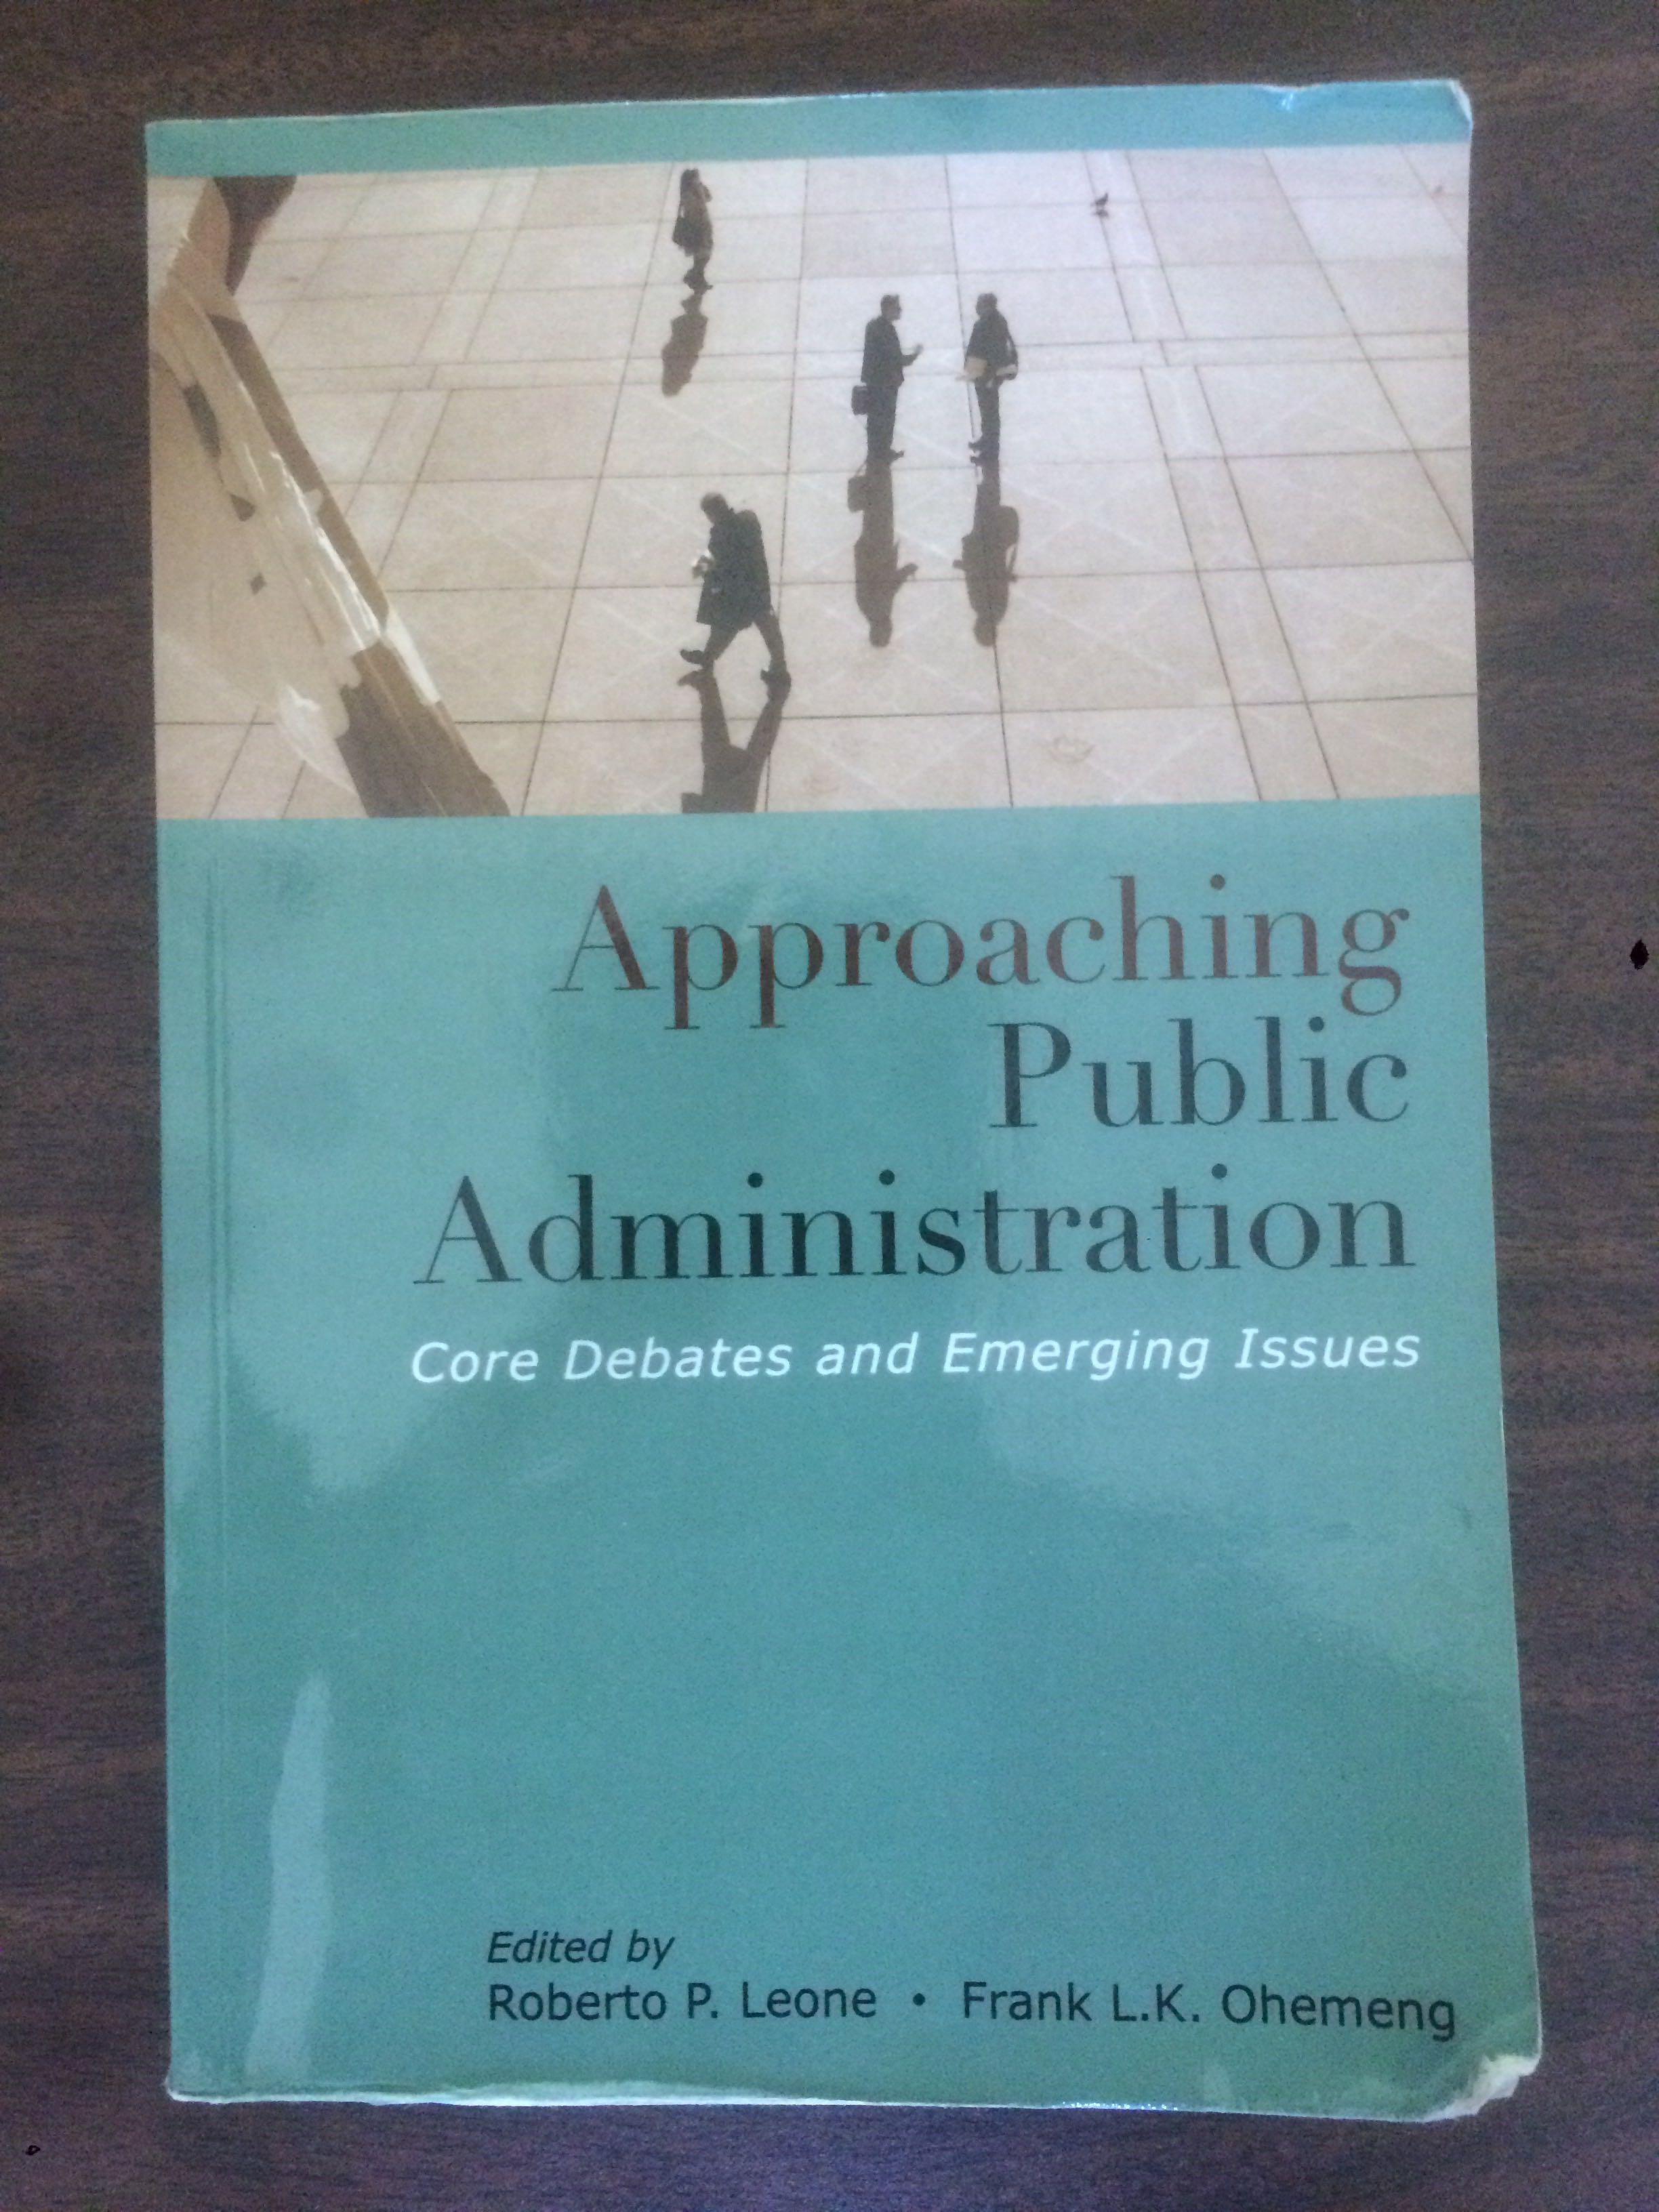 Approaching Public Administration: Core Debates and Emerging Issues